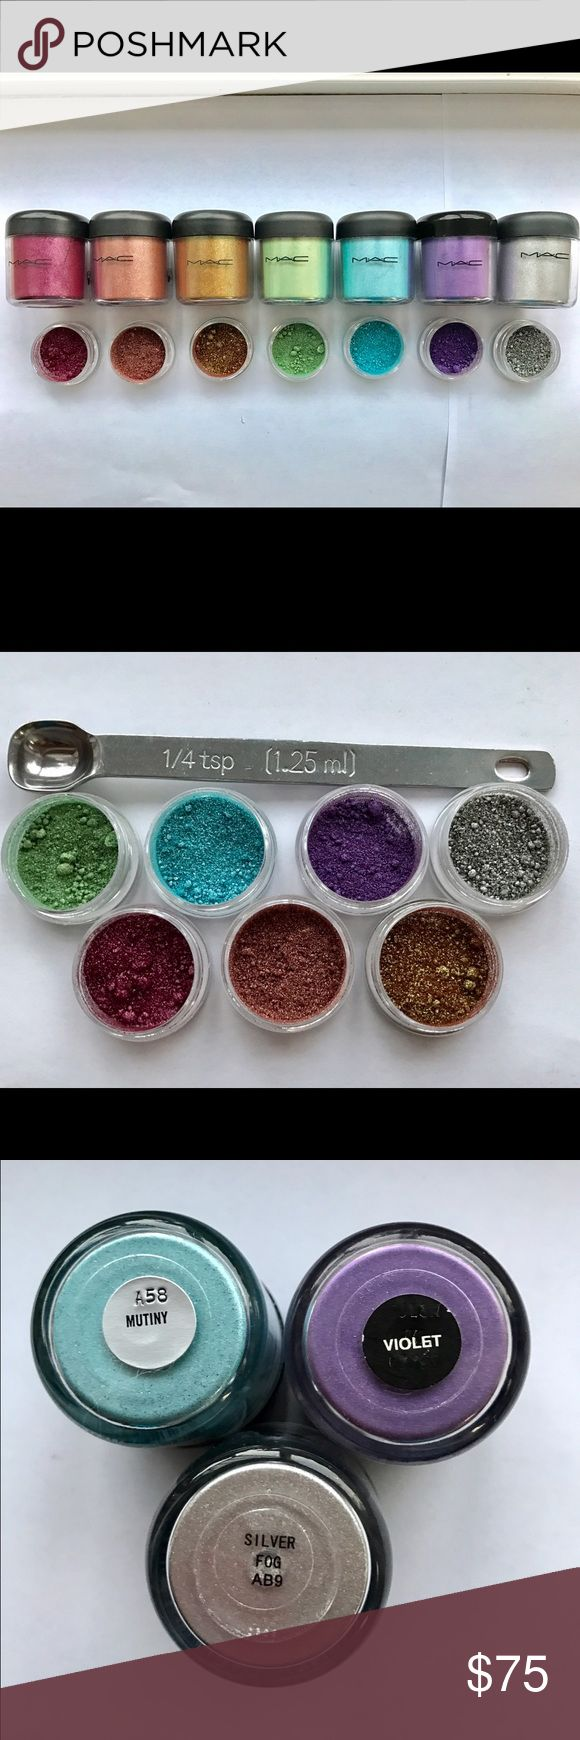 Rare MAC Rainbow bright sample set Authentic This is a Part Glam set including 1/4 teaspoon of each of the following pigments: Ruby Red, Tan, Old Gd, Golden Green, Mutiny, Violet, and Silver Fog! These are gorgeous shades perfect for any occasion!Super RARE 100% Authentic!  The pigments are packaged in BPA Free 3g jars! Get them while they last! SHIPS THE NEXT DAY! MAC Cosmetics Makeup Eyeshadow